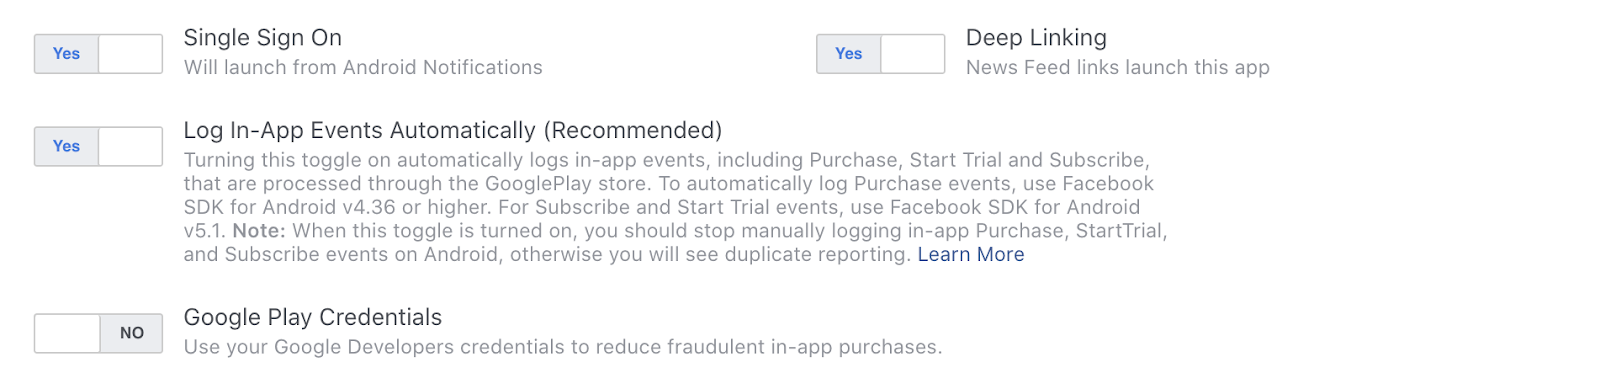 Allow Facebook to automatically log in-app events, which may help save your efforts in the future.